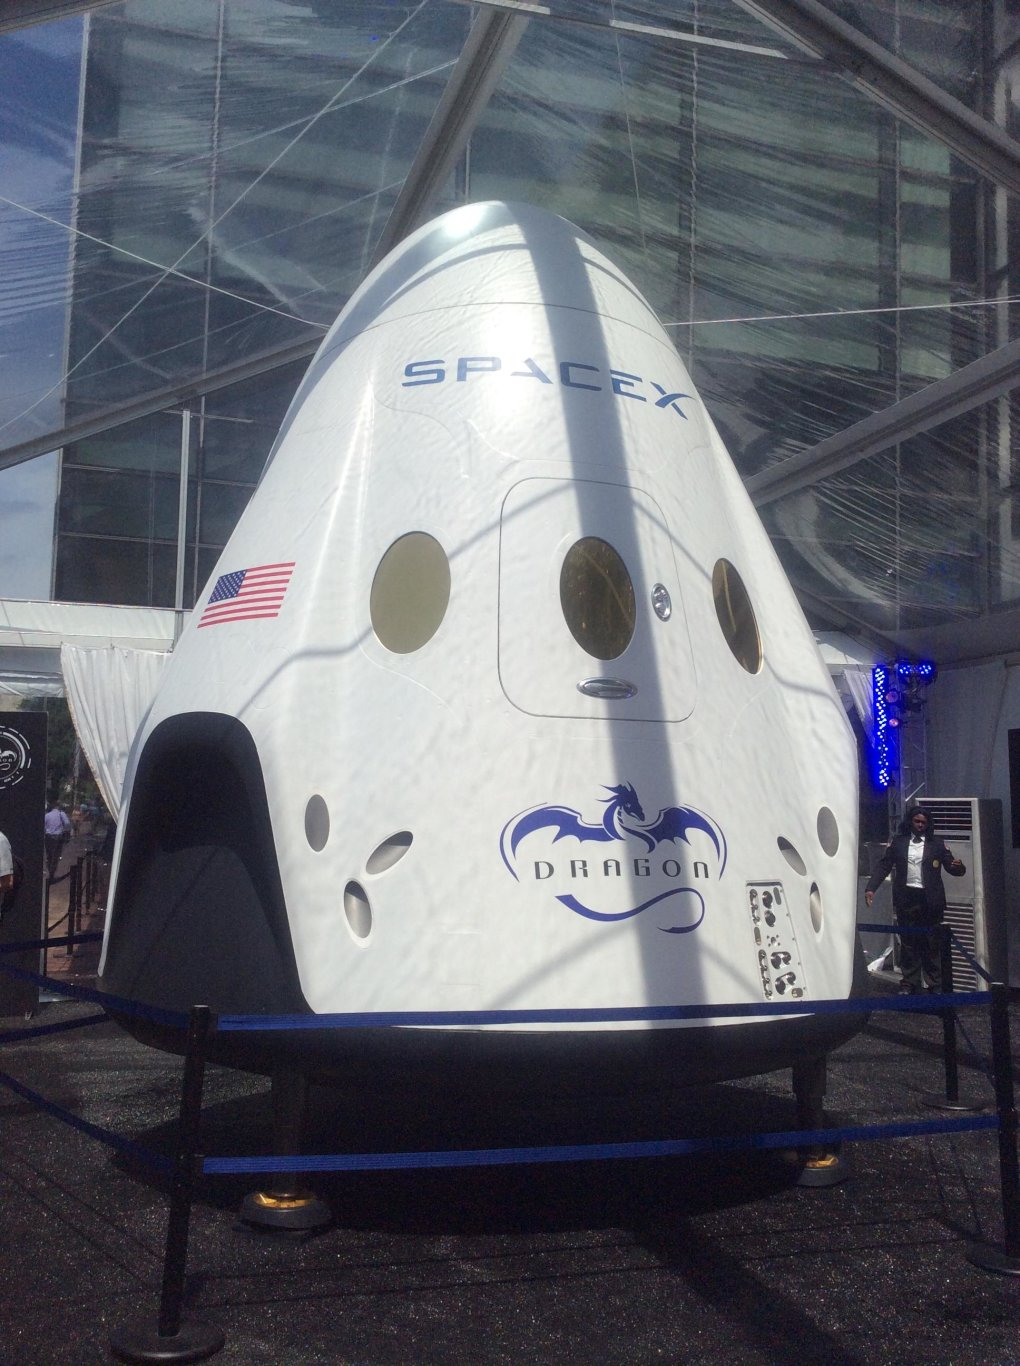 6y7qdst - spacex's dragon. america's next generation spacecraft.